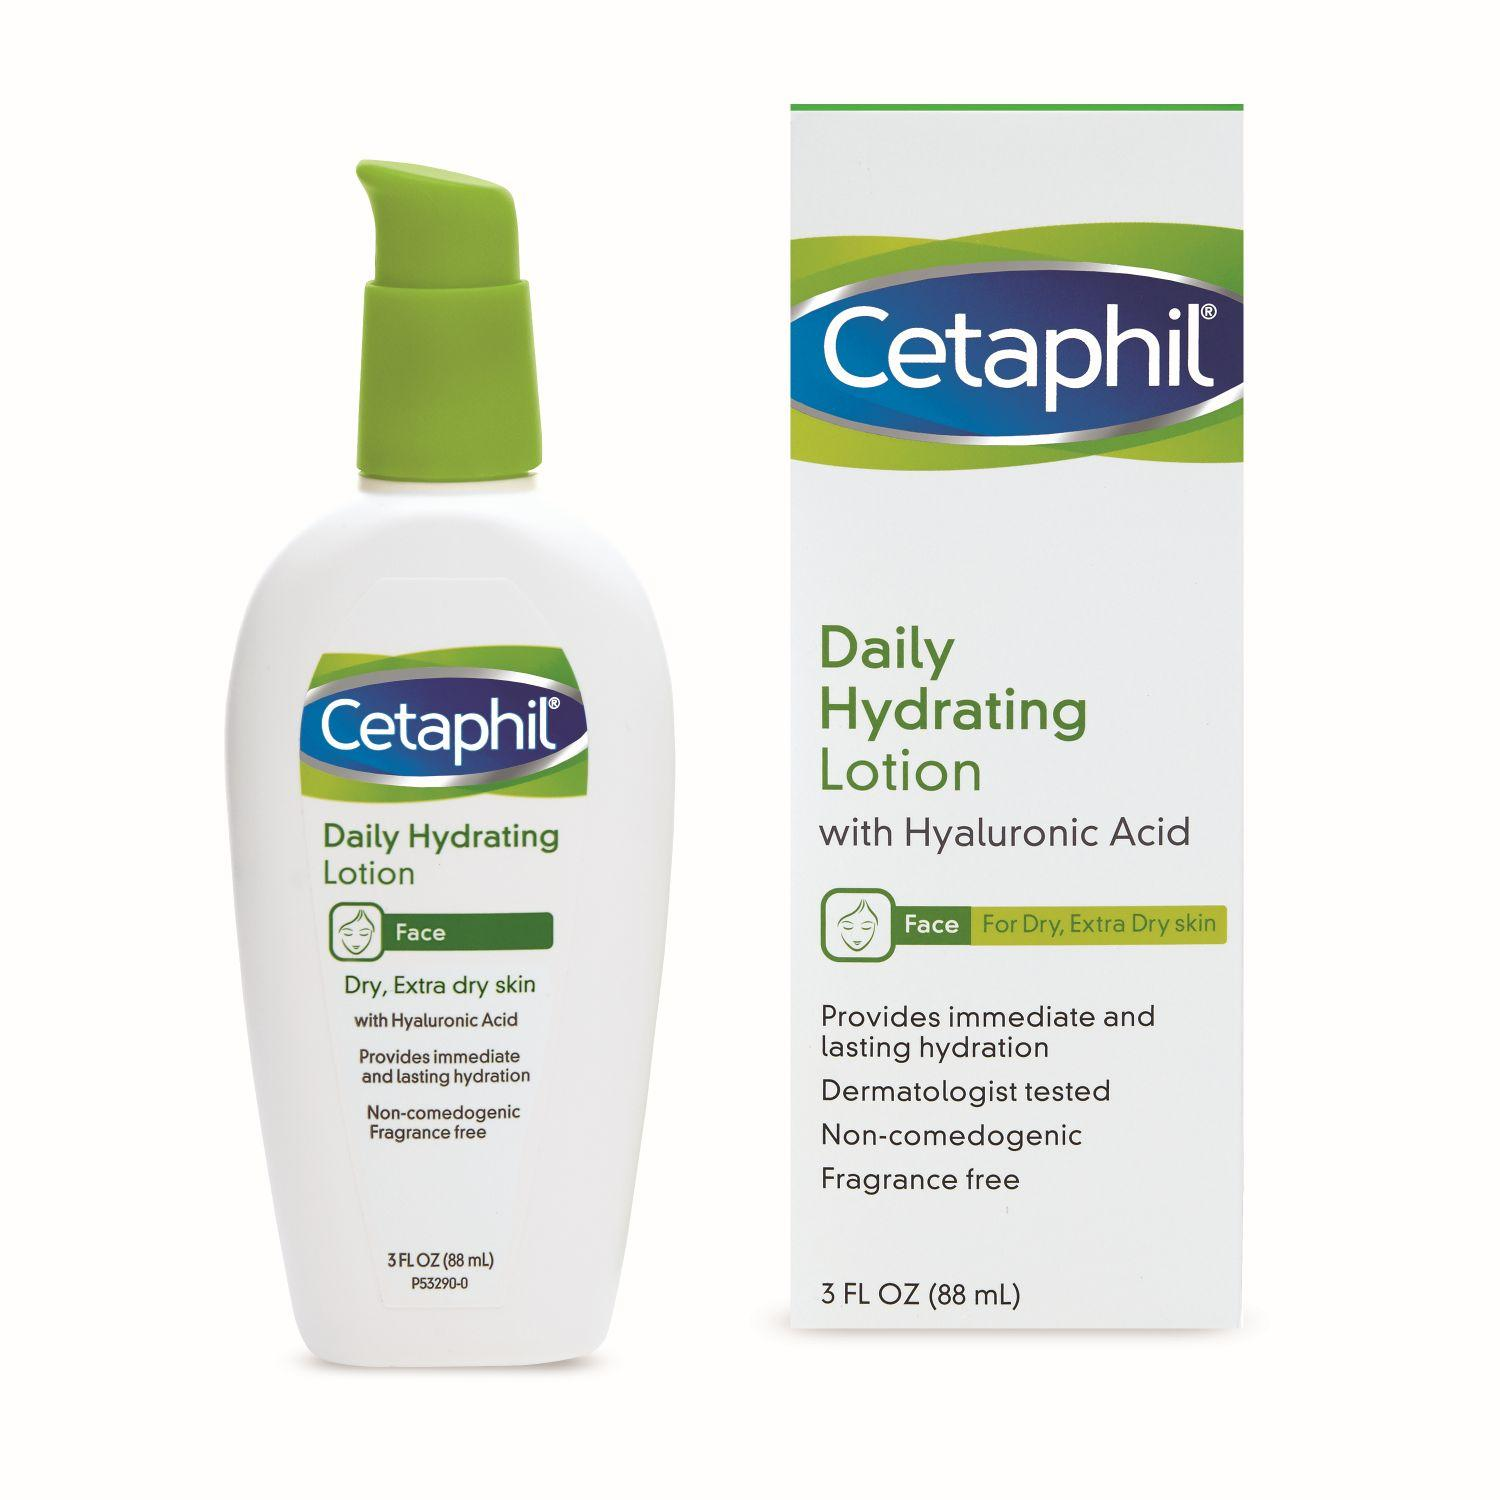 USING CETAPHIL BODY CREAM ON FACE